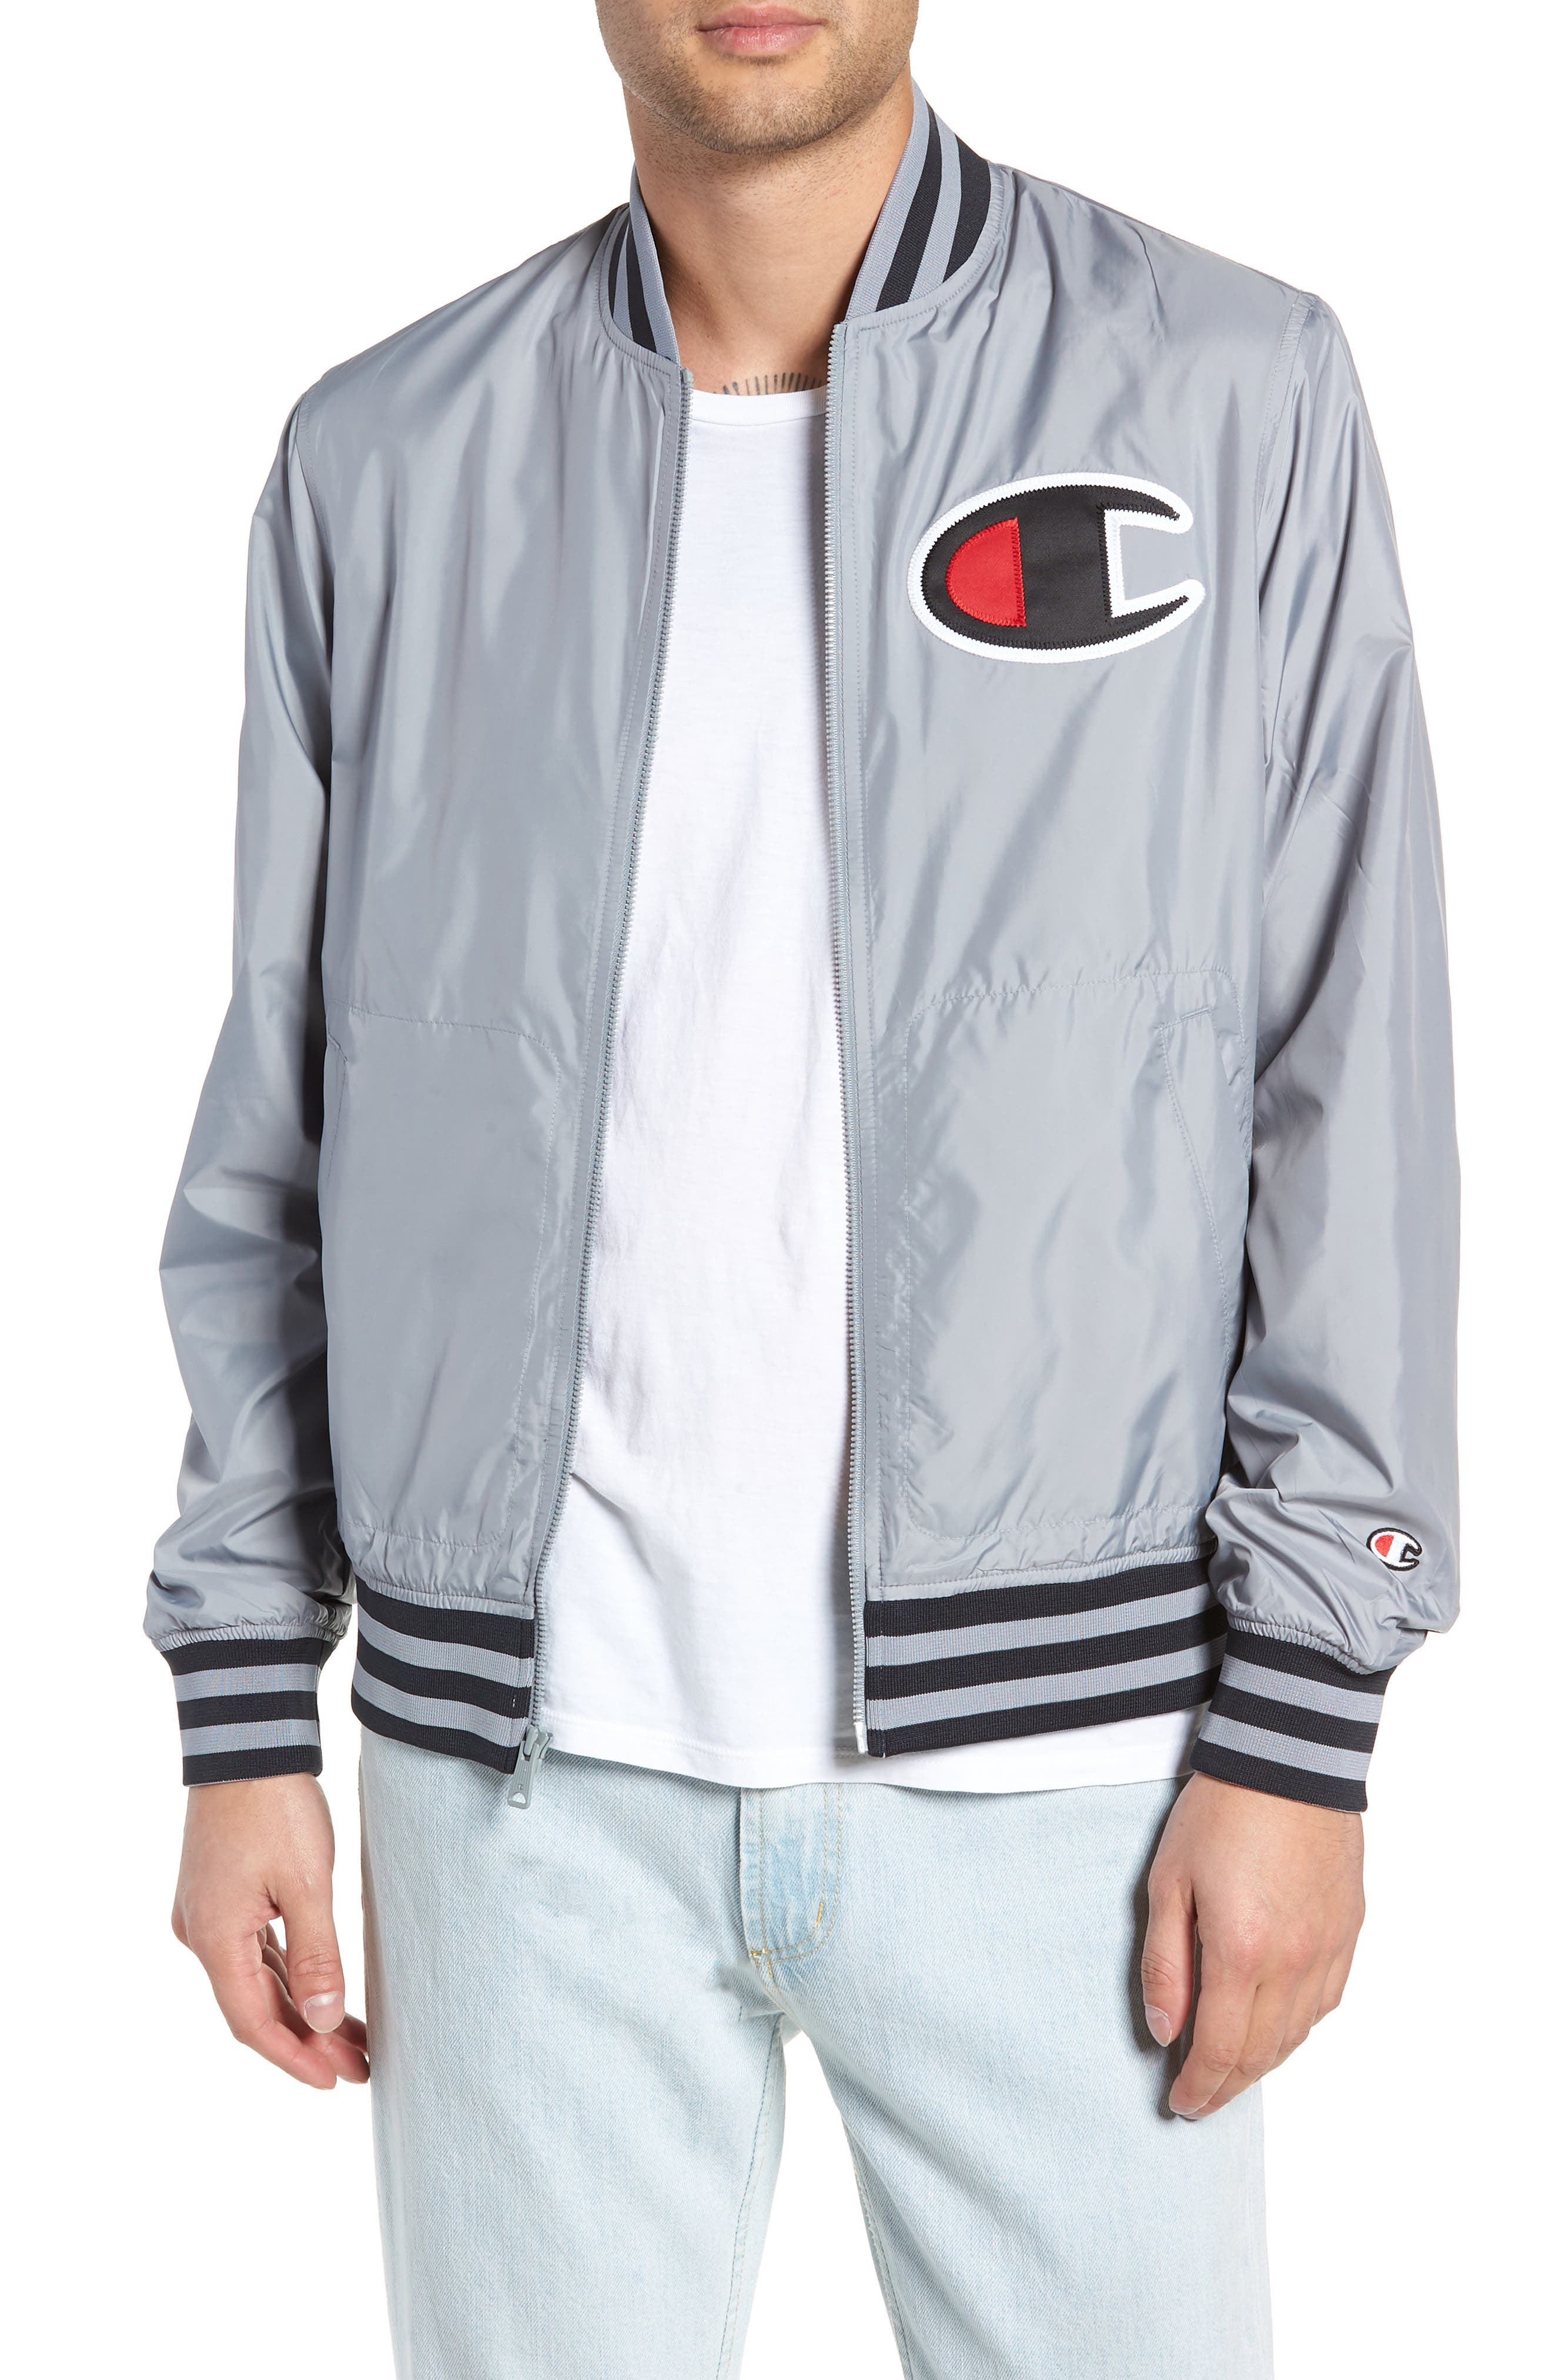 Satin Baseball Jacket,                             Main thumbnail 1, color,                             030